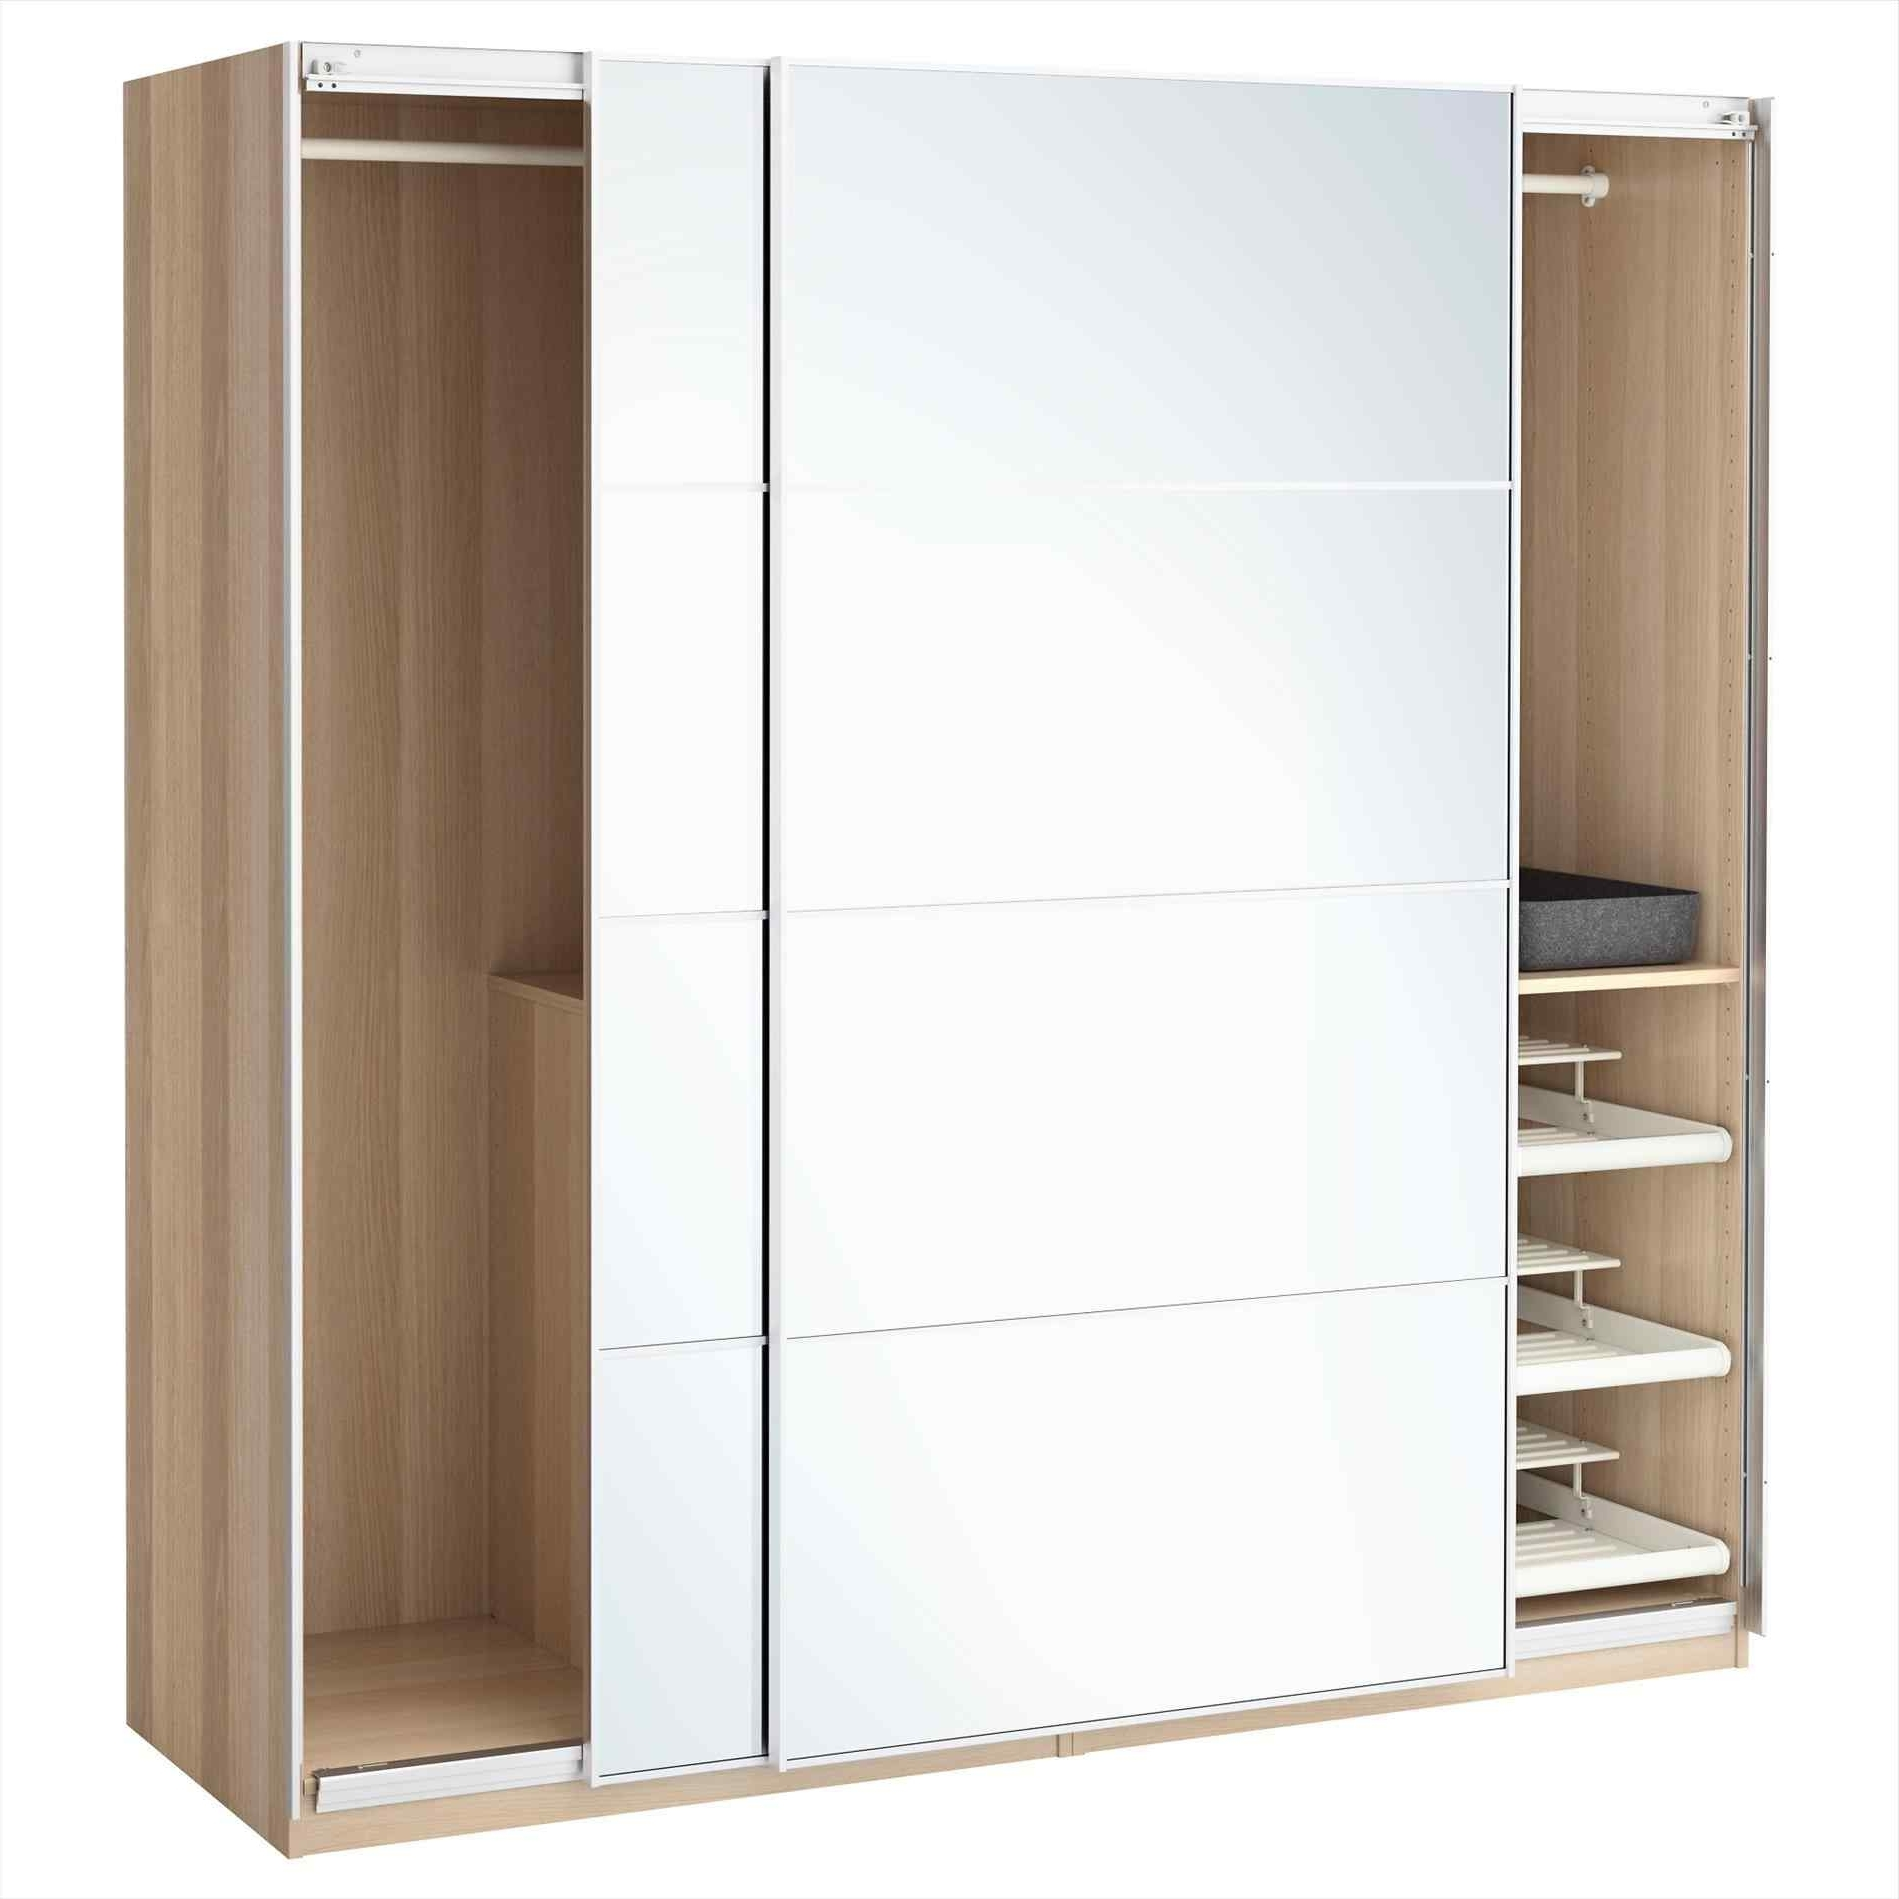 Wardrobe & Armoire : And Bronze Signature Built In Wardrobes With With 2018 Signature Wardrobes (View 13 of 15)